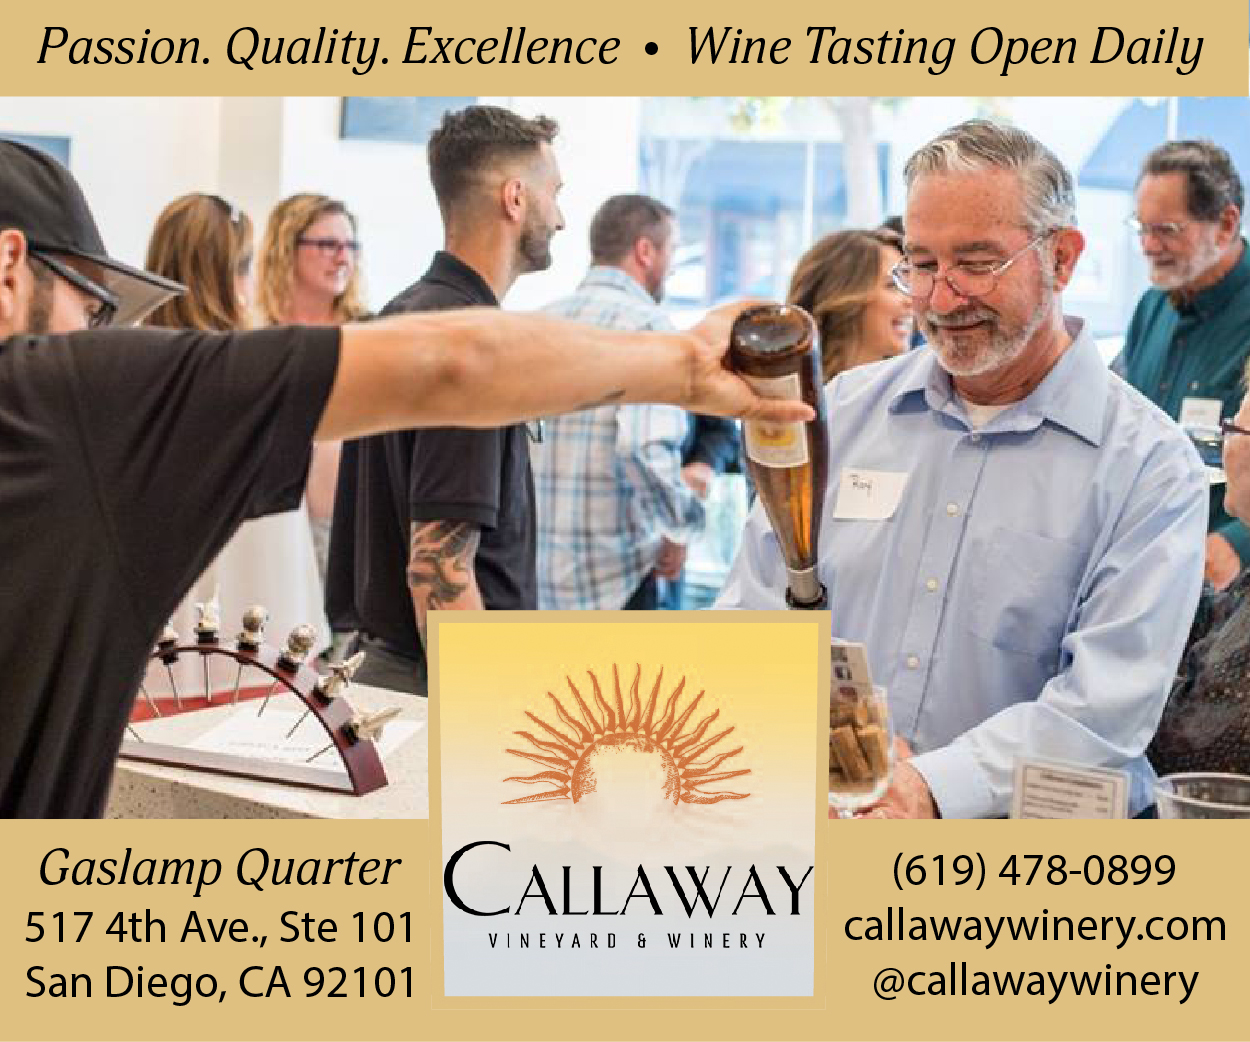 Callaway Winery Wine Tasting Coupon Temecula